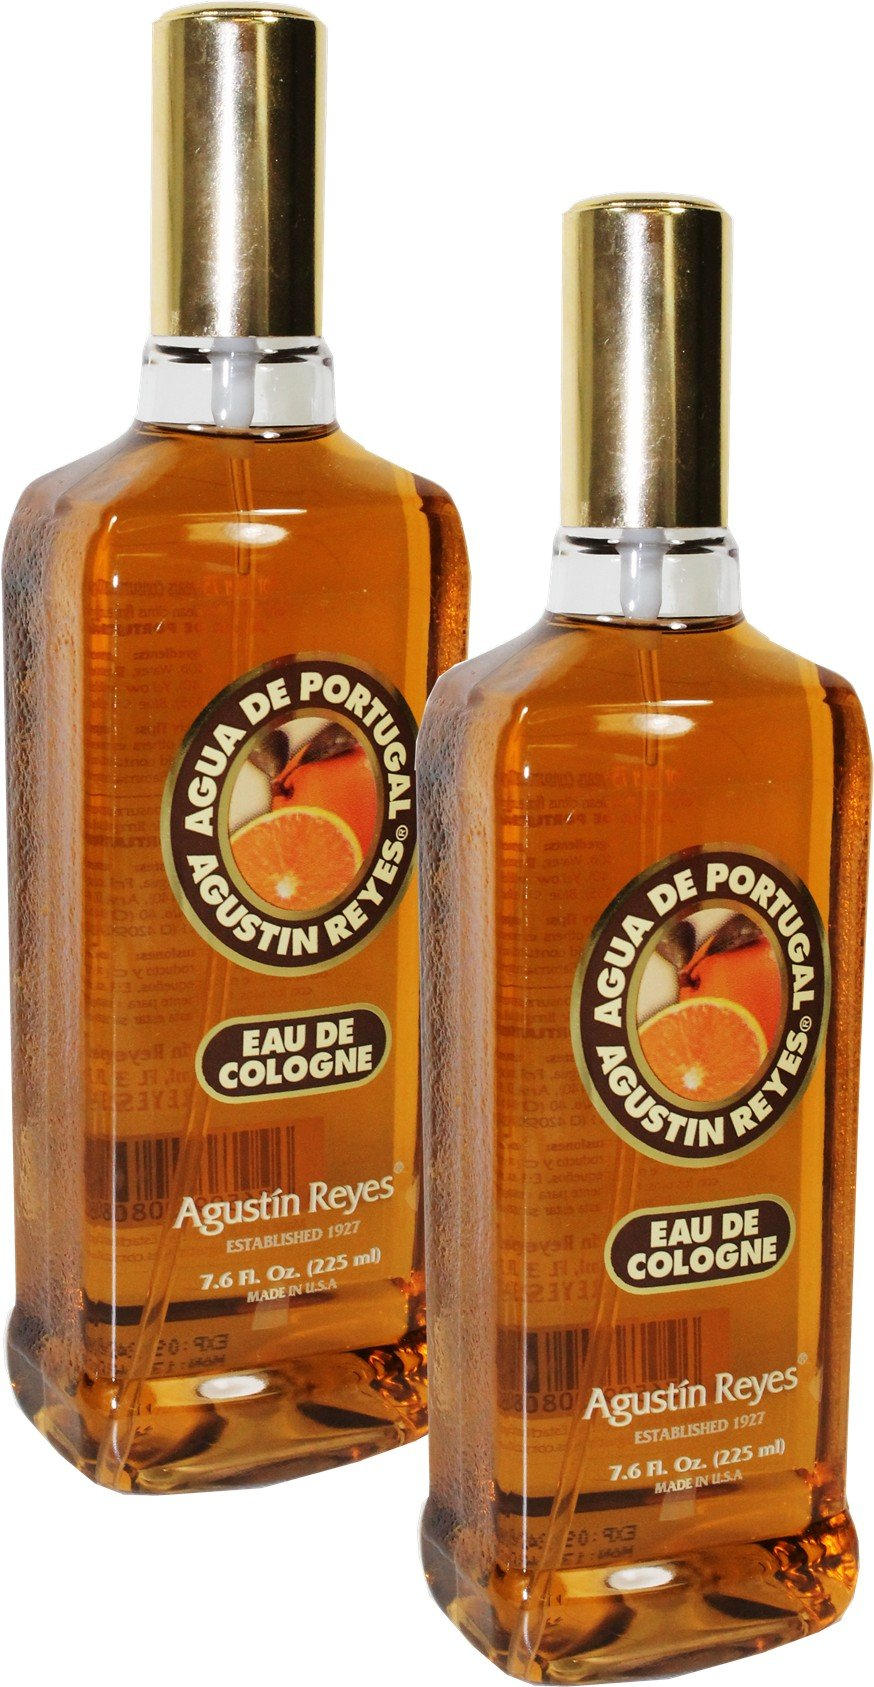 Agua de Portugal by Agustin Reyes. Pack of 2 Spray 7.6 oz bottles by Judastice